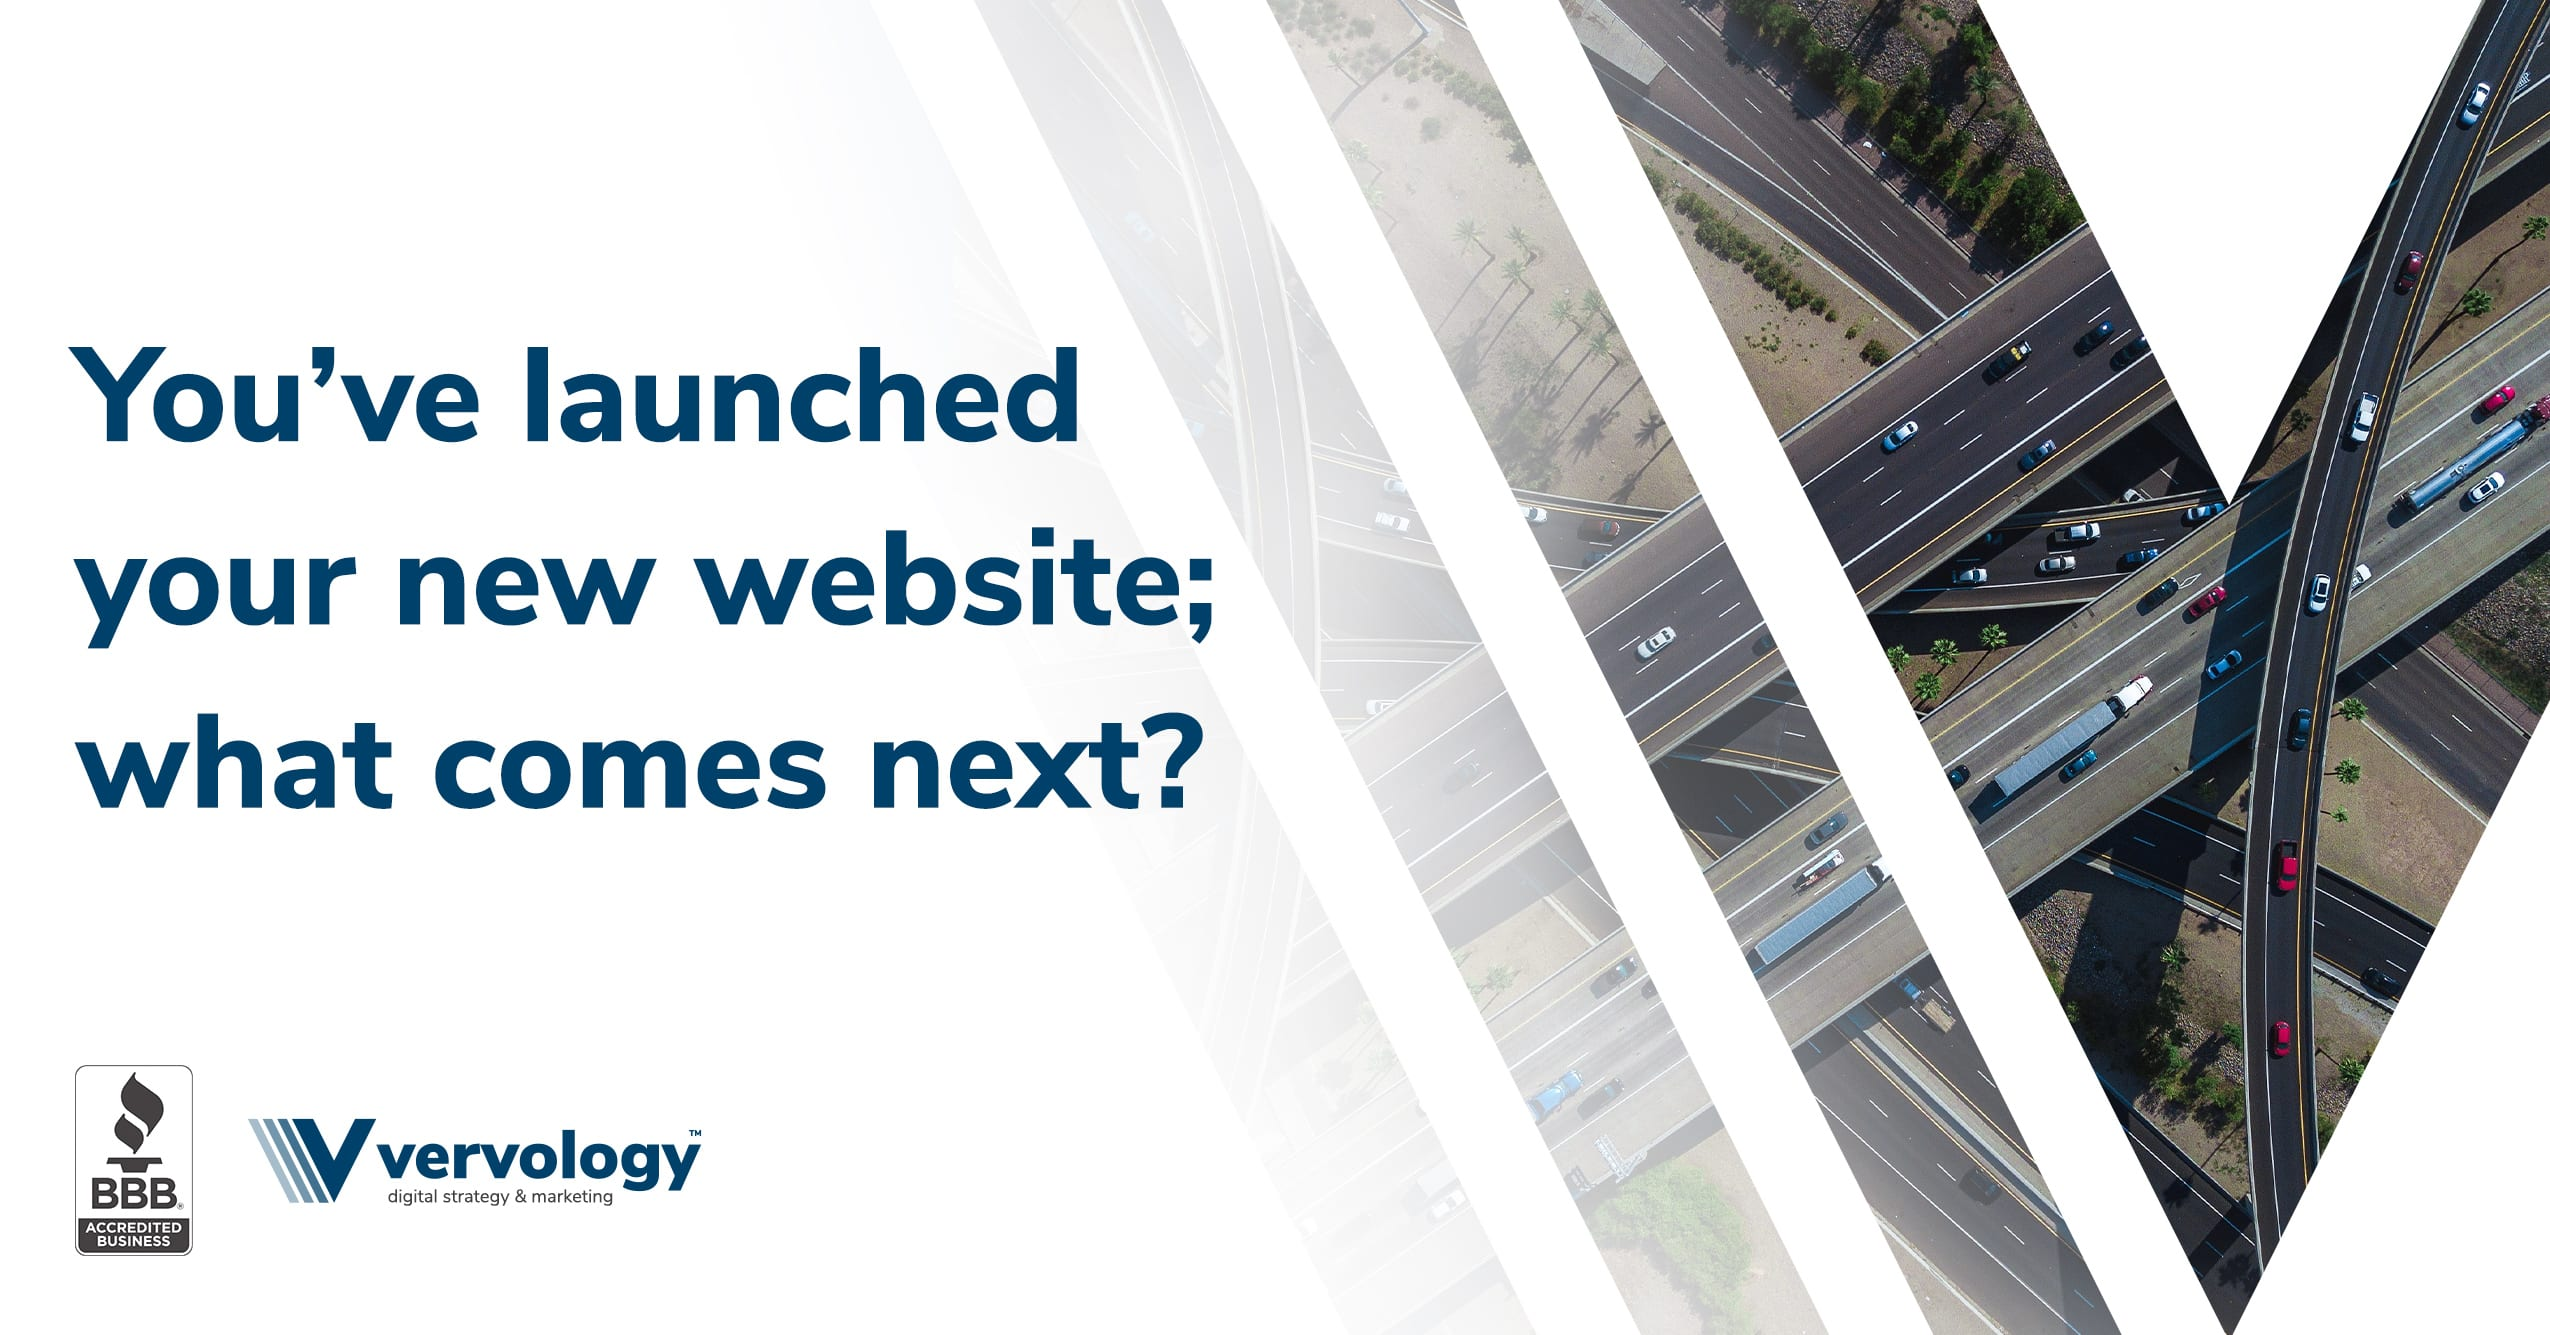 You've launched your new website; what comes next?